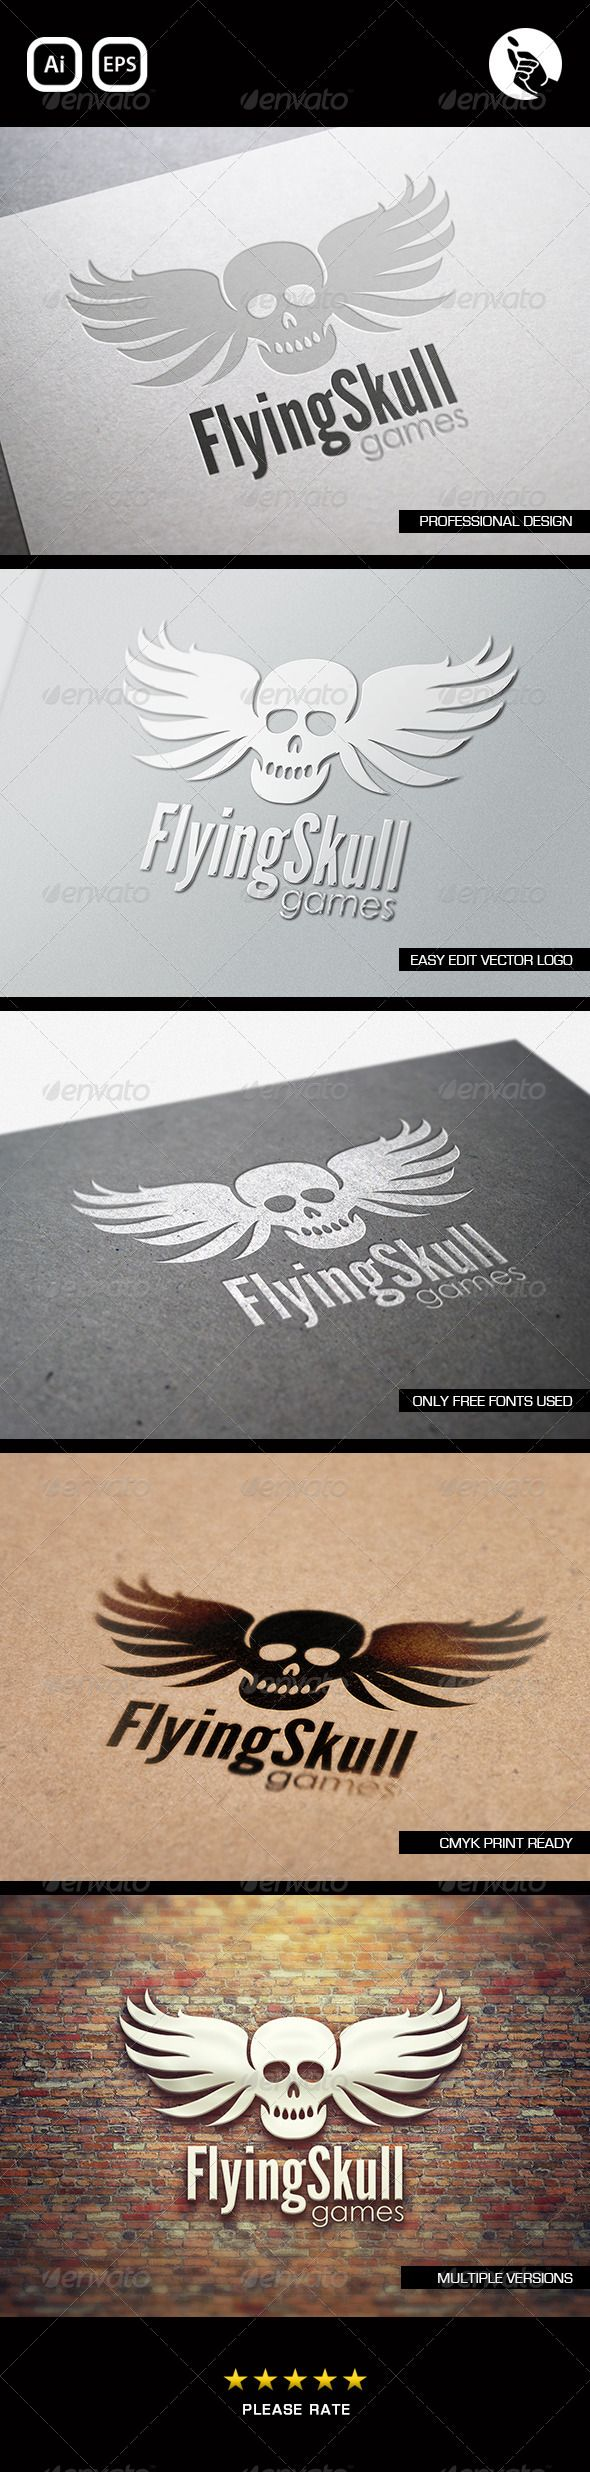 Flying Skull Games Logo  #GraphicRiver         FLYING SKULL GAMES LOGO BY FLIPSIDE  	 Professionally designed unique logo  	 Fully editable with eps & ai formats  	 CMYK print ready files  	 This Logo uses free fonts, links included  	 FONTS:  	 •  .fontsquirrel /fonts/League-Gothic  	 • Century Gothic     Created: 27May13 GraphicsFilesIncluded: VectorEPS #AIIllustrator Layered: No MinimumAdobeCSVersion: CS Resolution: Resizable Tags: computer #console #cool #dead #developer #editable #eps…